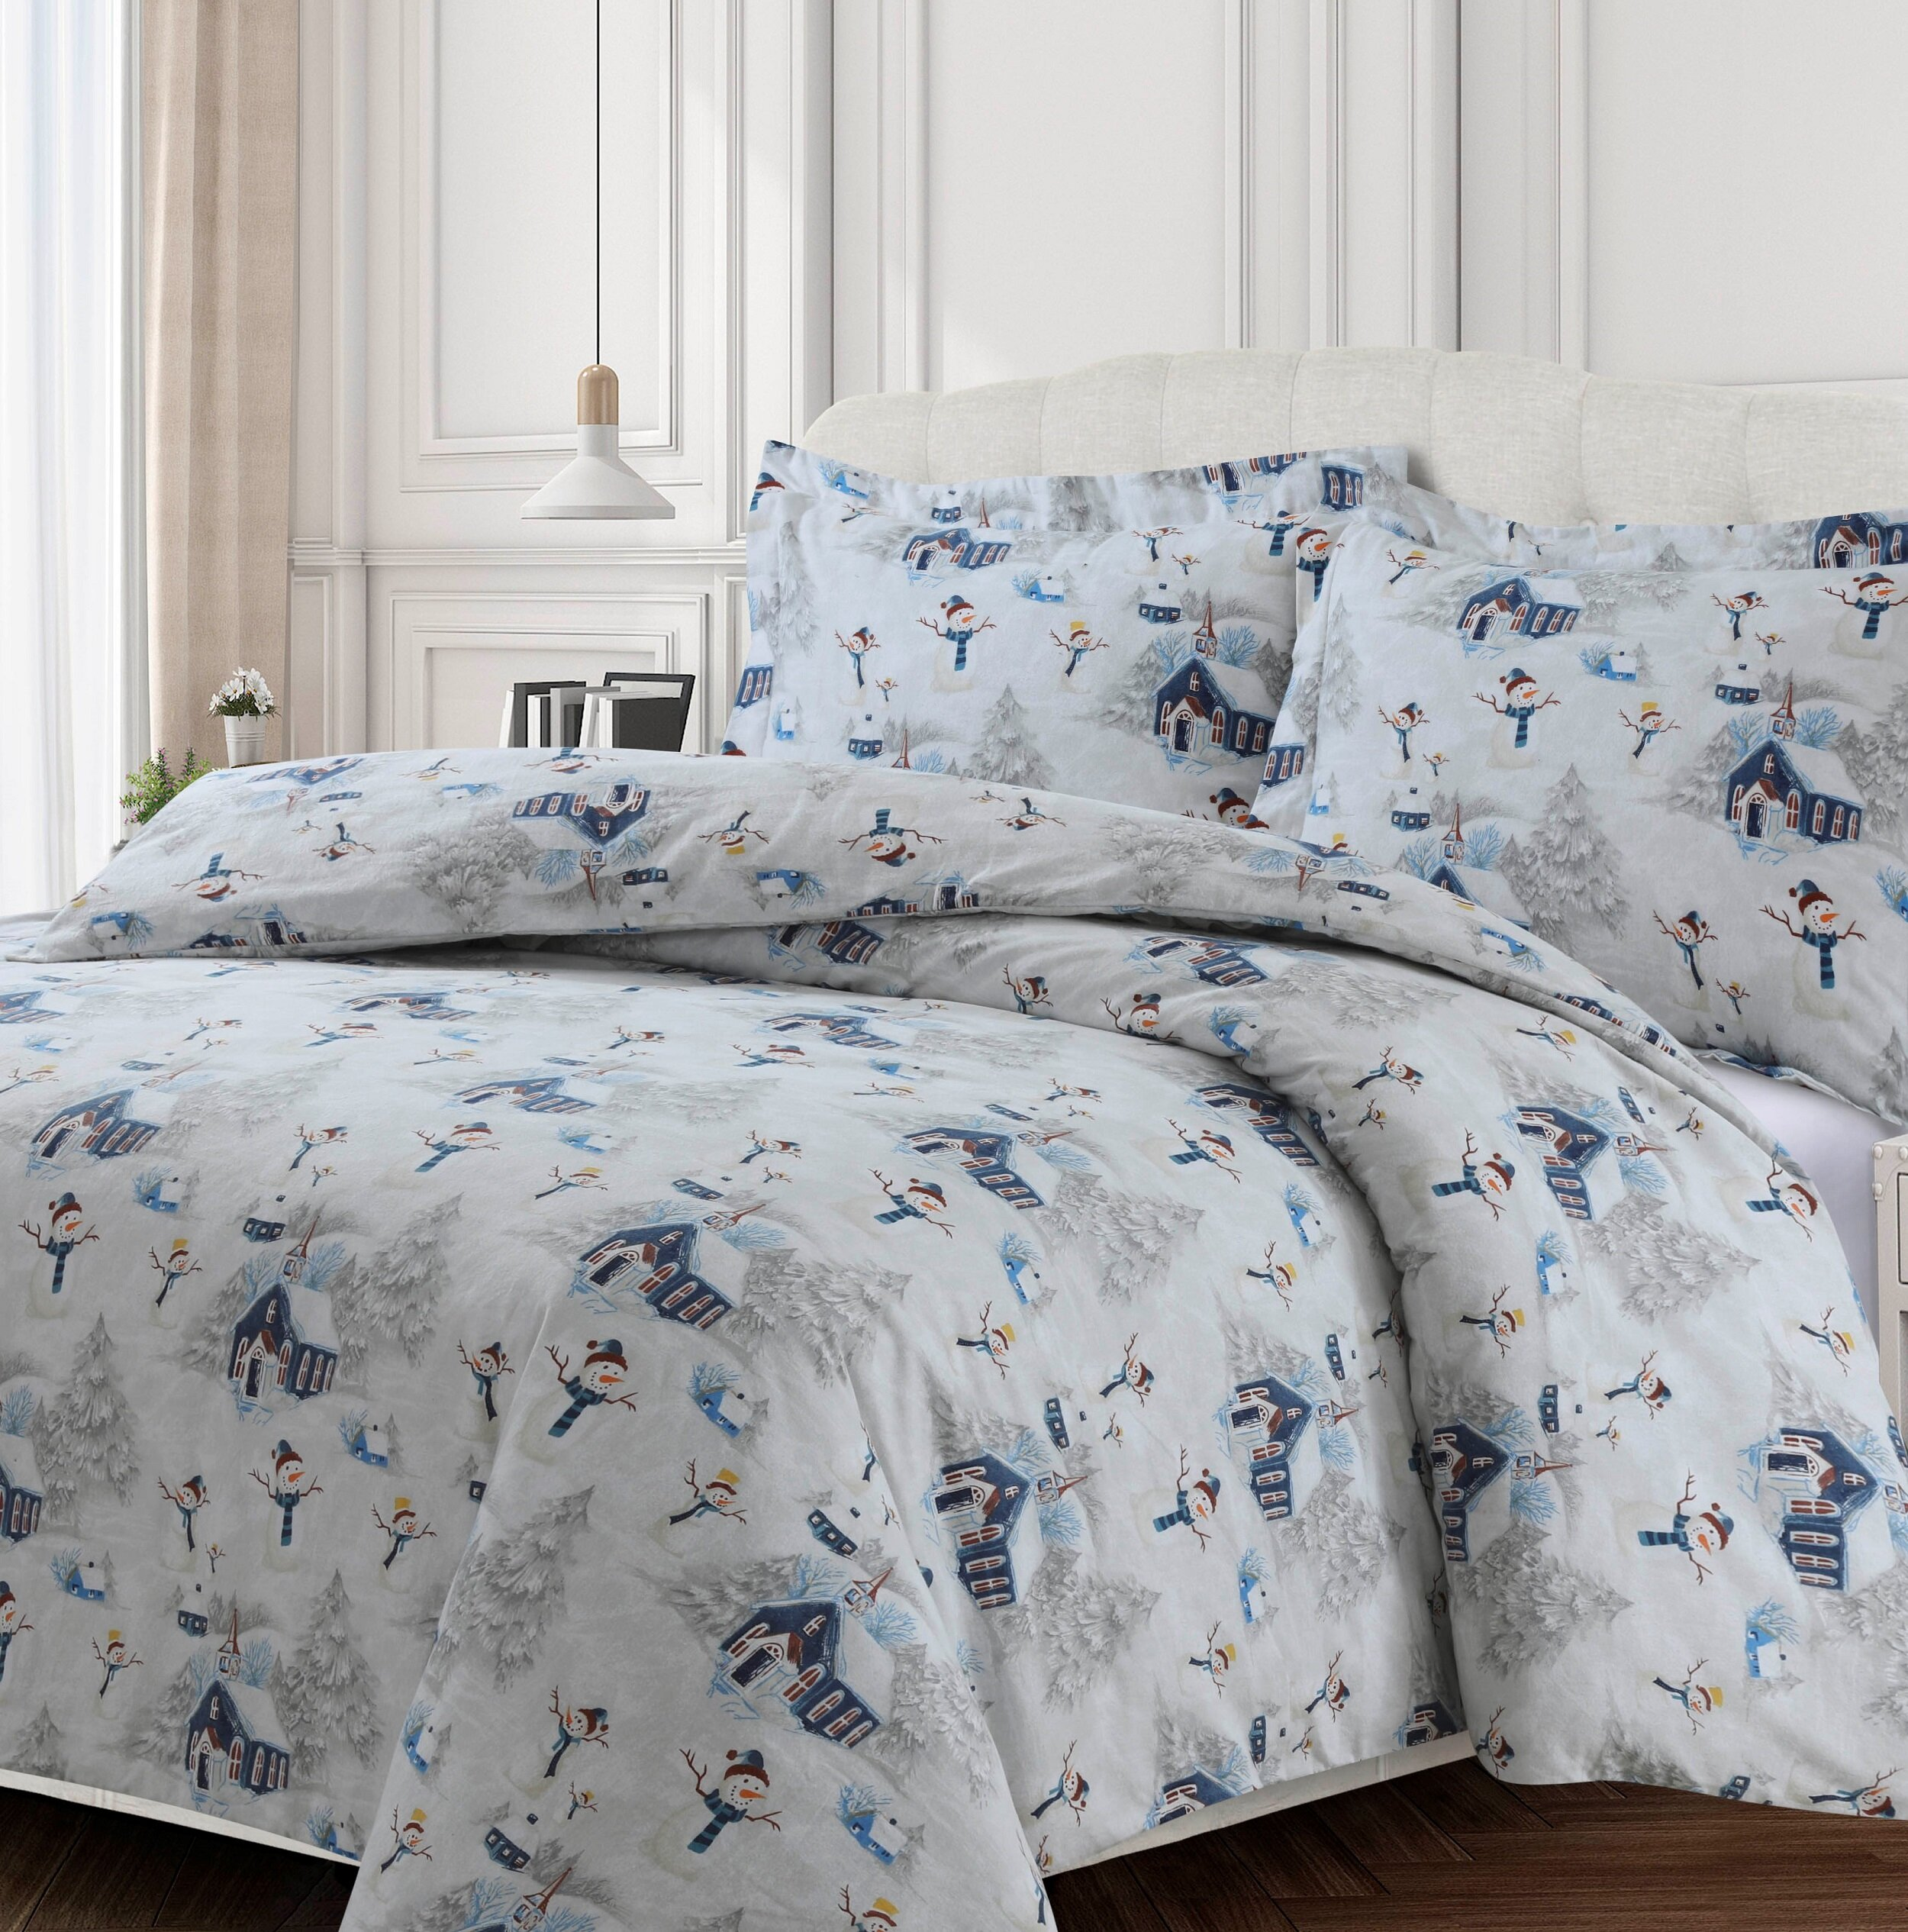 Flannel The Holiday Aisle Bedding You Ll Love In 2021 Wayfair